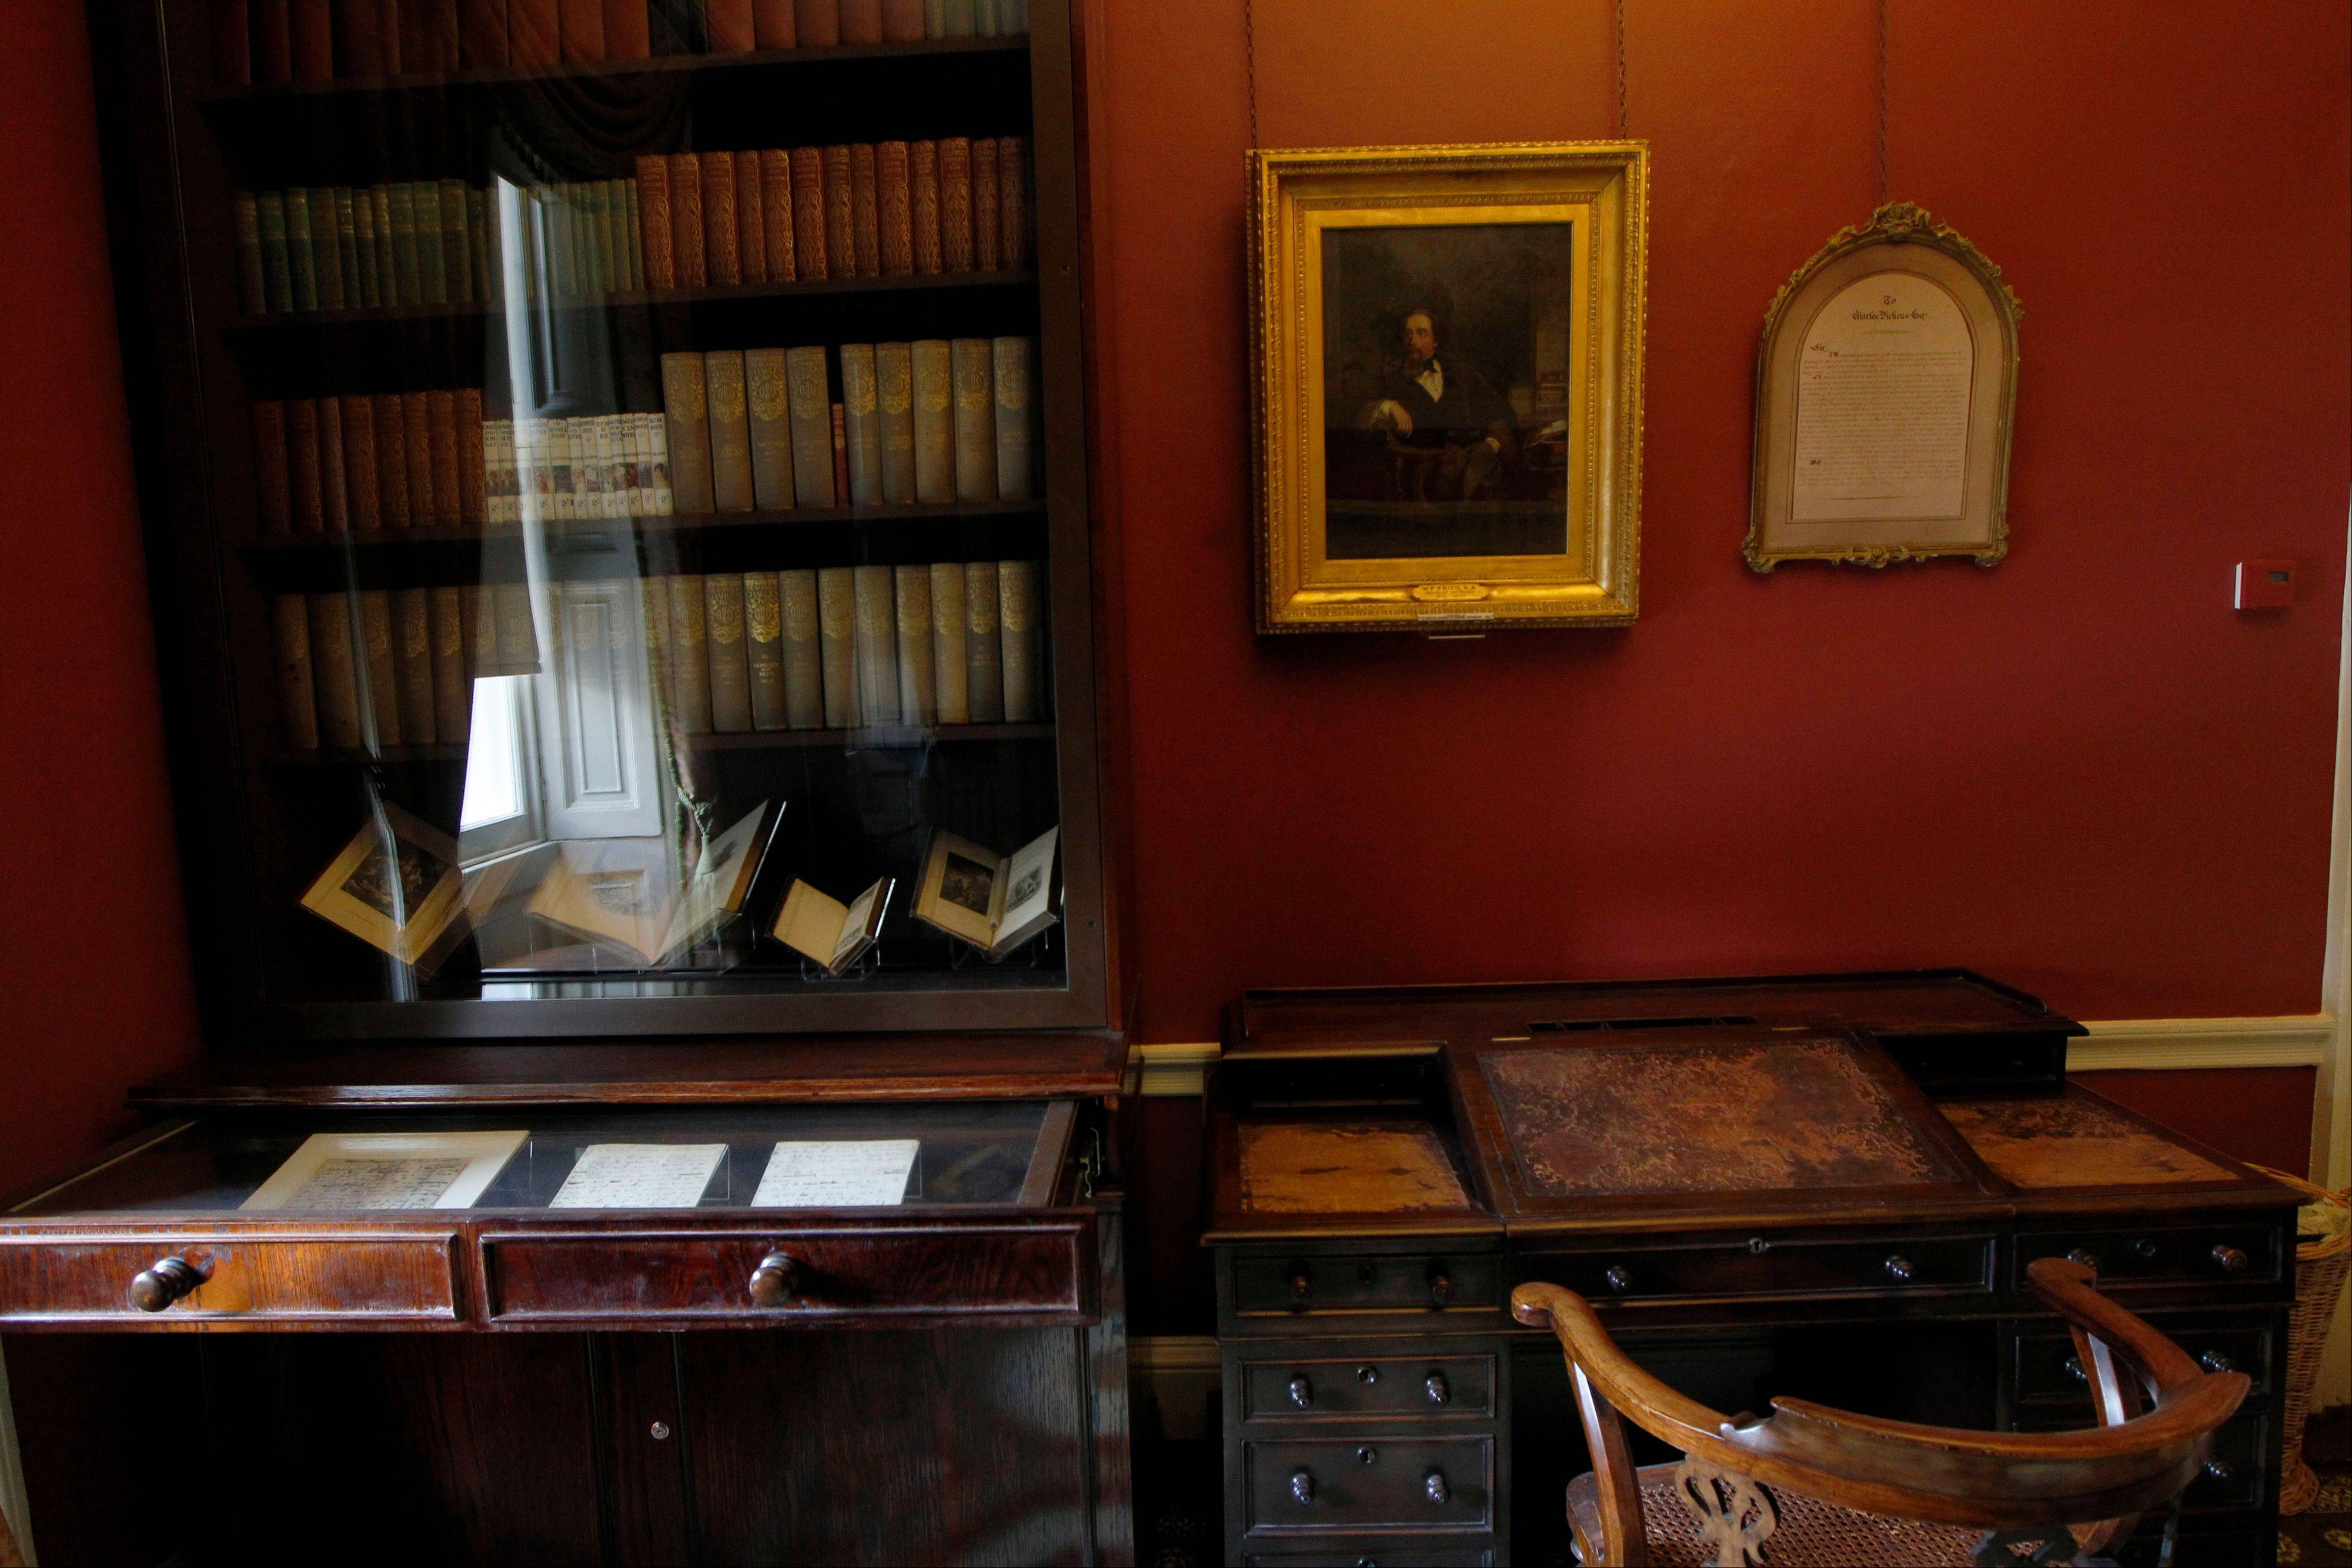 The study in Charles Dickens' home is part of the renovated Charles Dickens Museum in London.